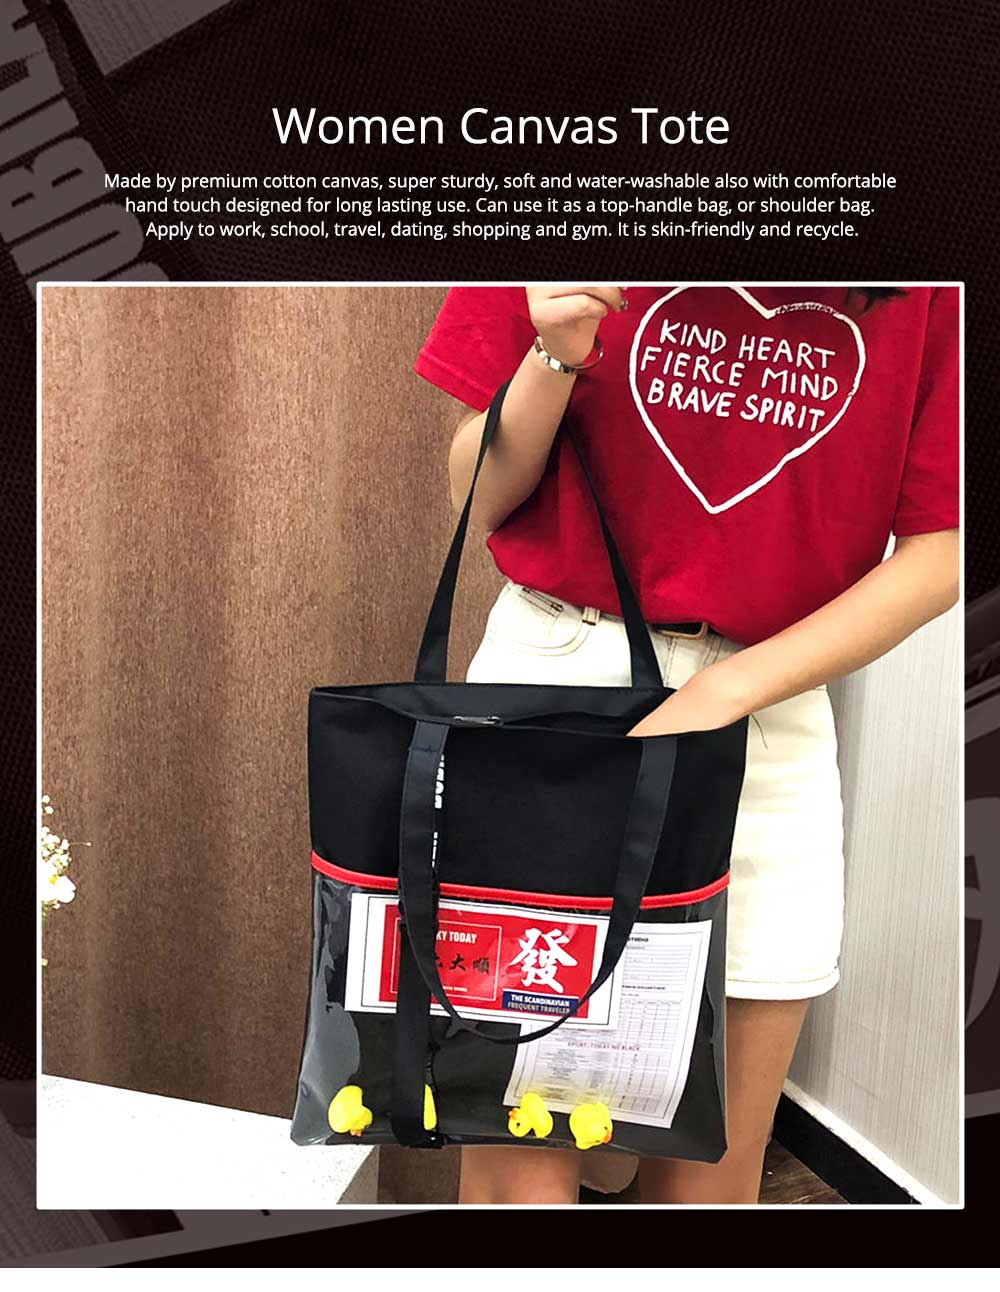 Canvas Tote Cute Duck Handbags for Women, Casual Shoulder Work Bag Crossbody Bags for Dating, Traveling, Shopping, Gym 0